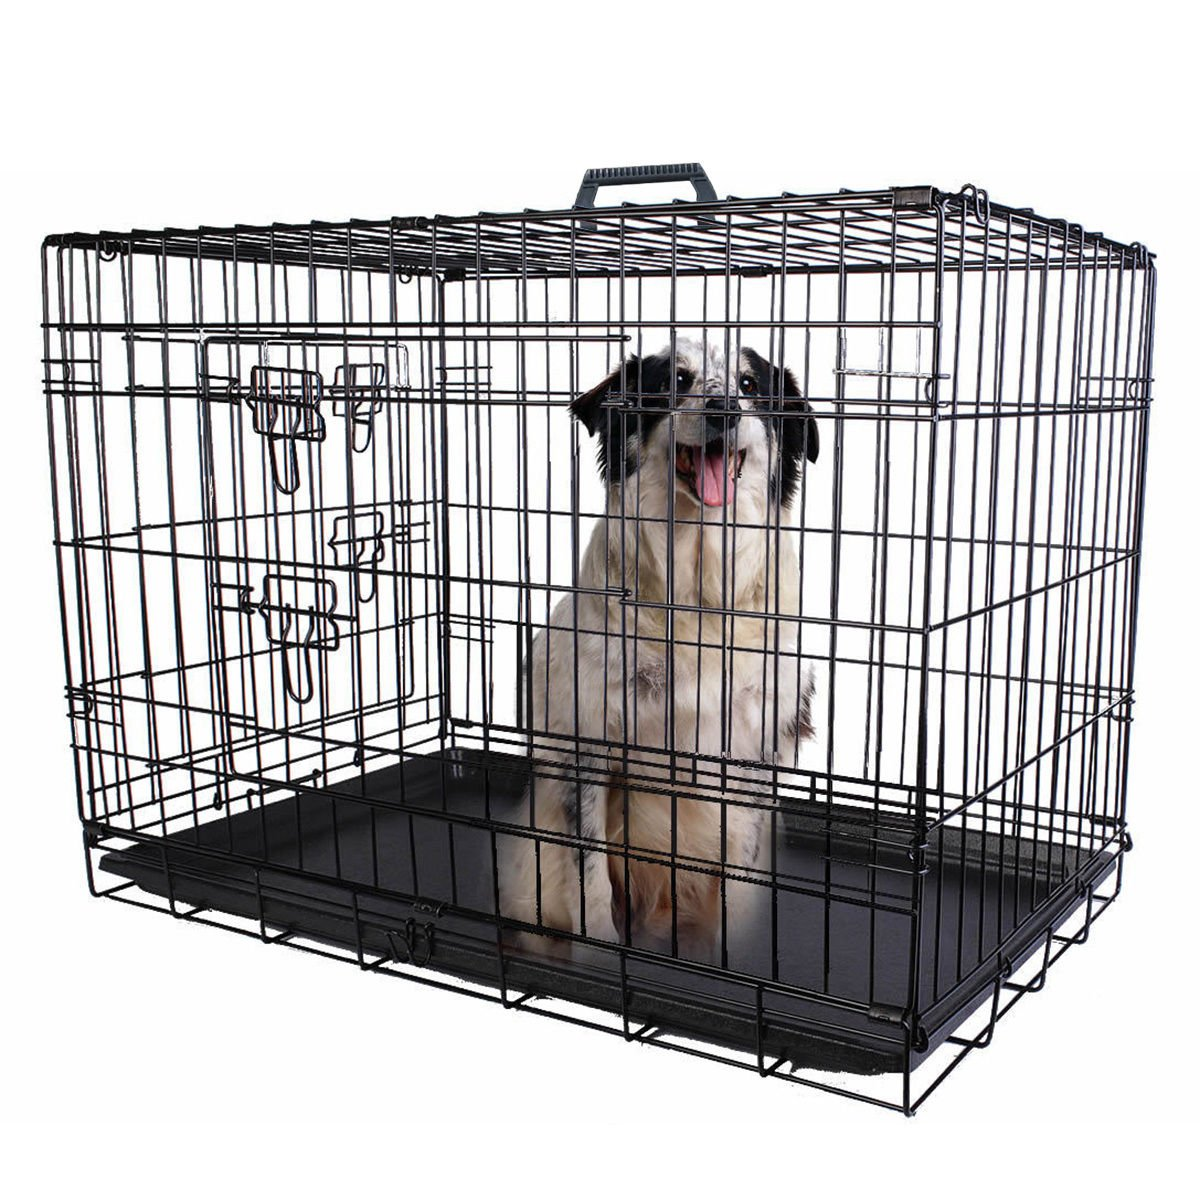 Eaglelnw 36'' 2 Doors Wire Folding Pet Crate Dog Cage Suitcase Kennel Playpen